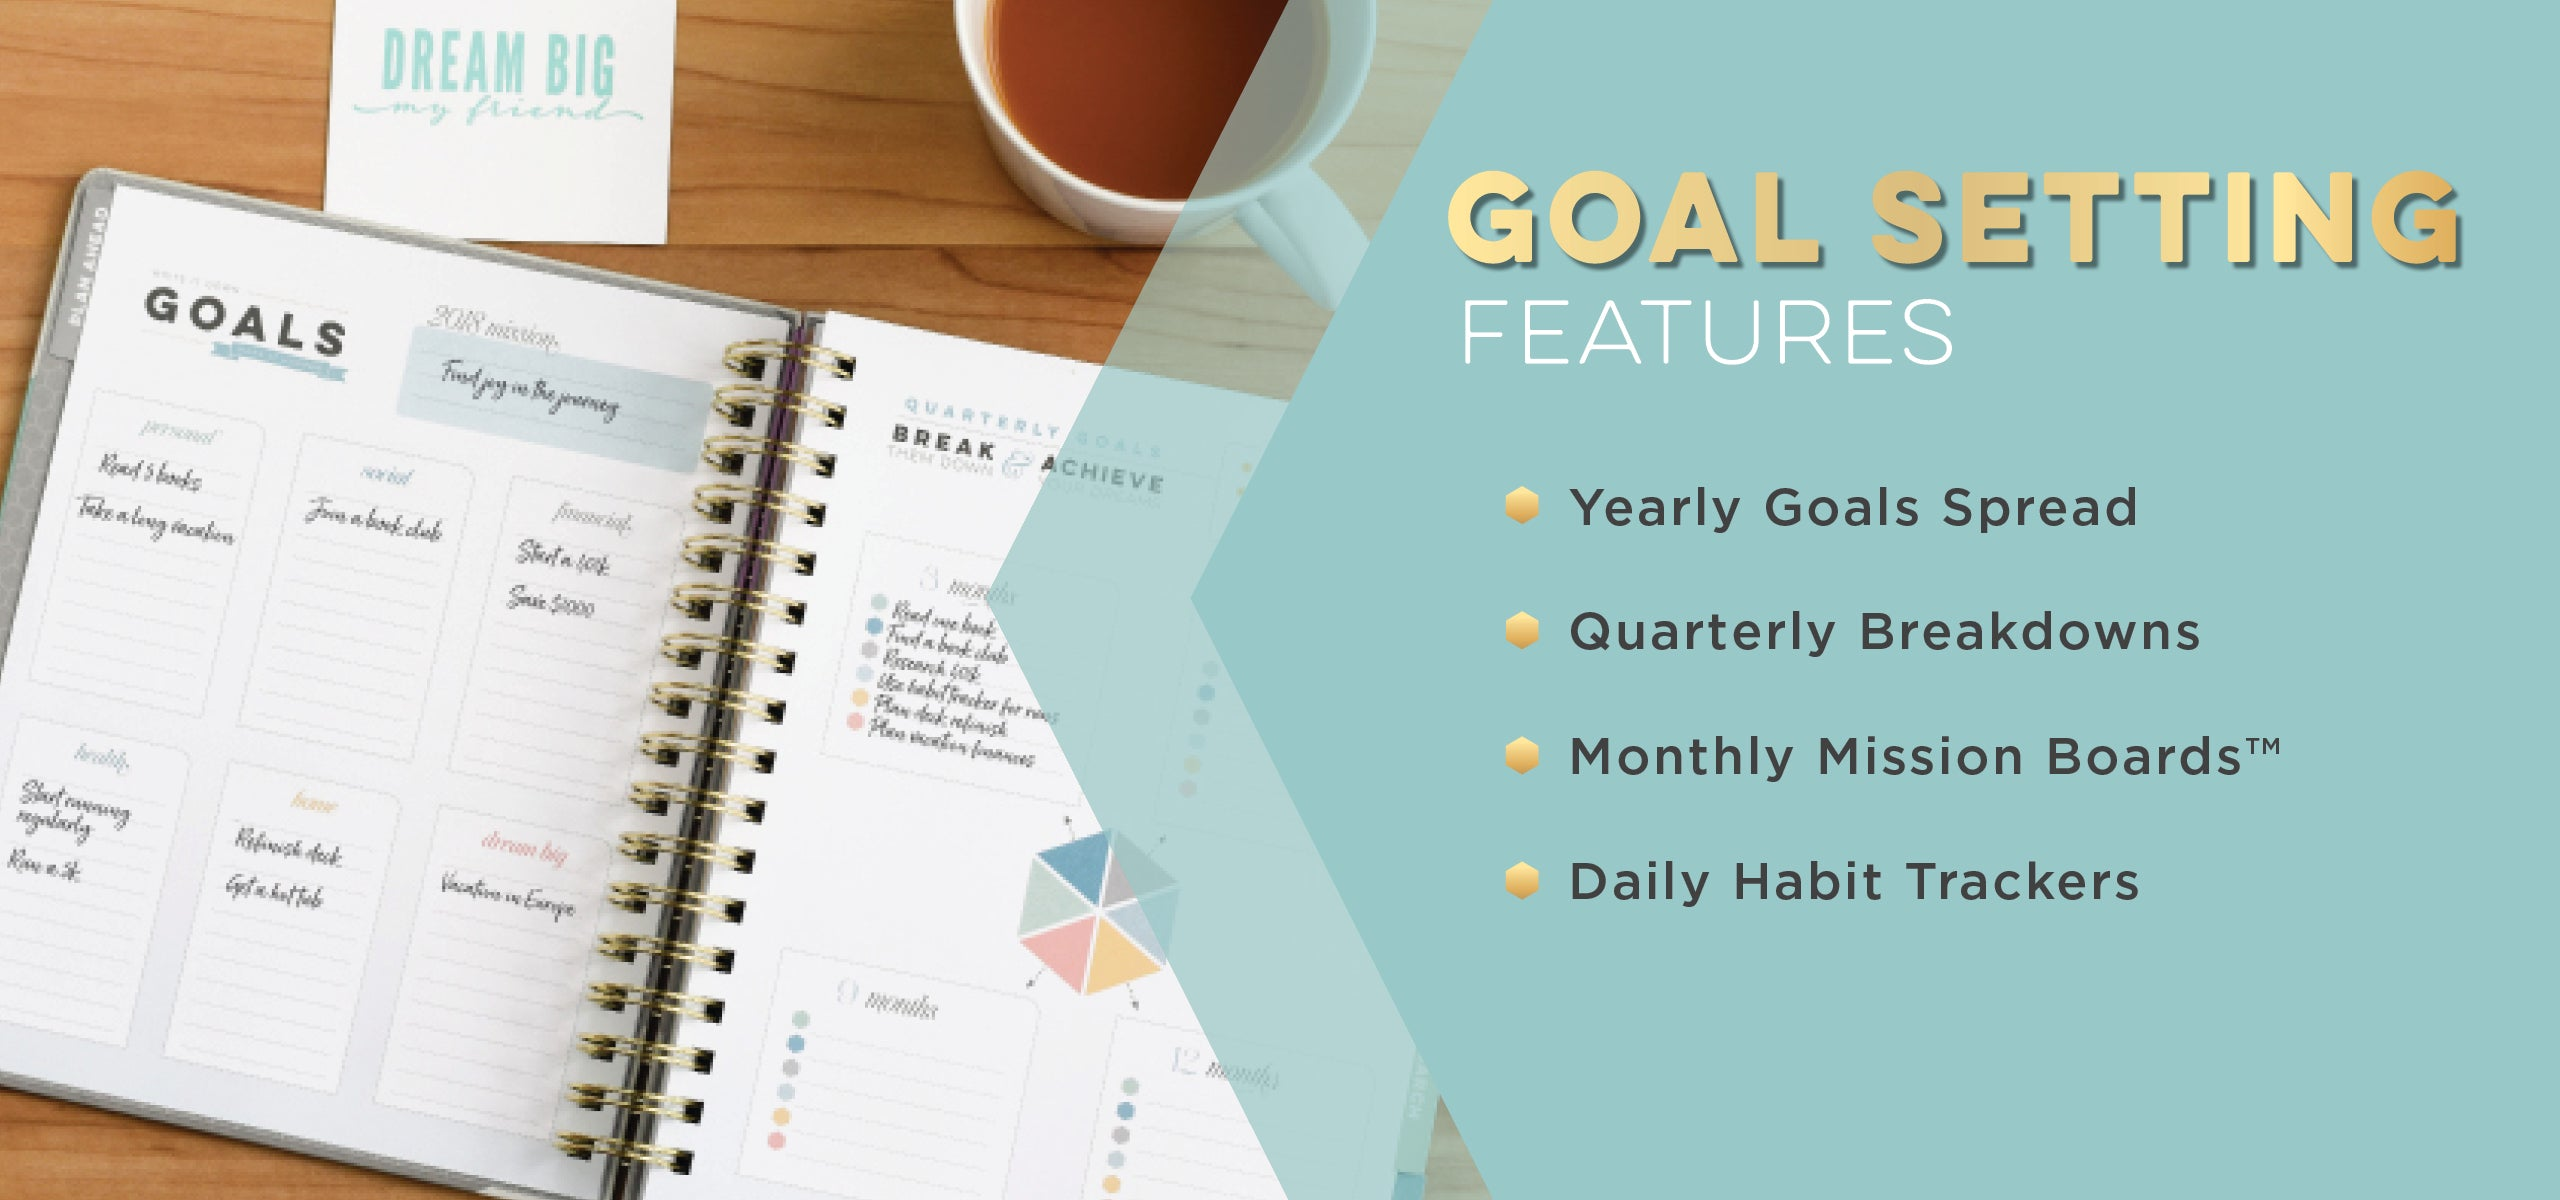 Weekly Planner with Goal Setting Section